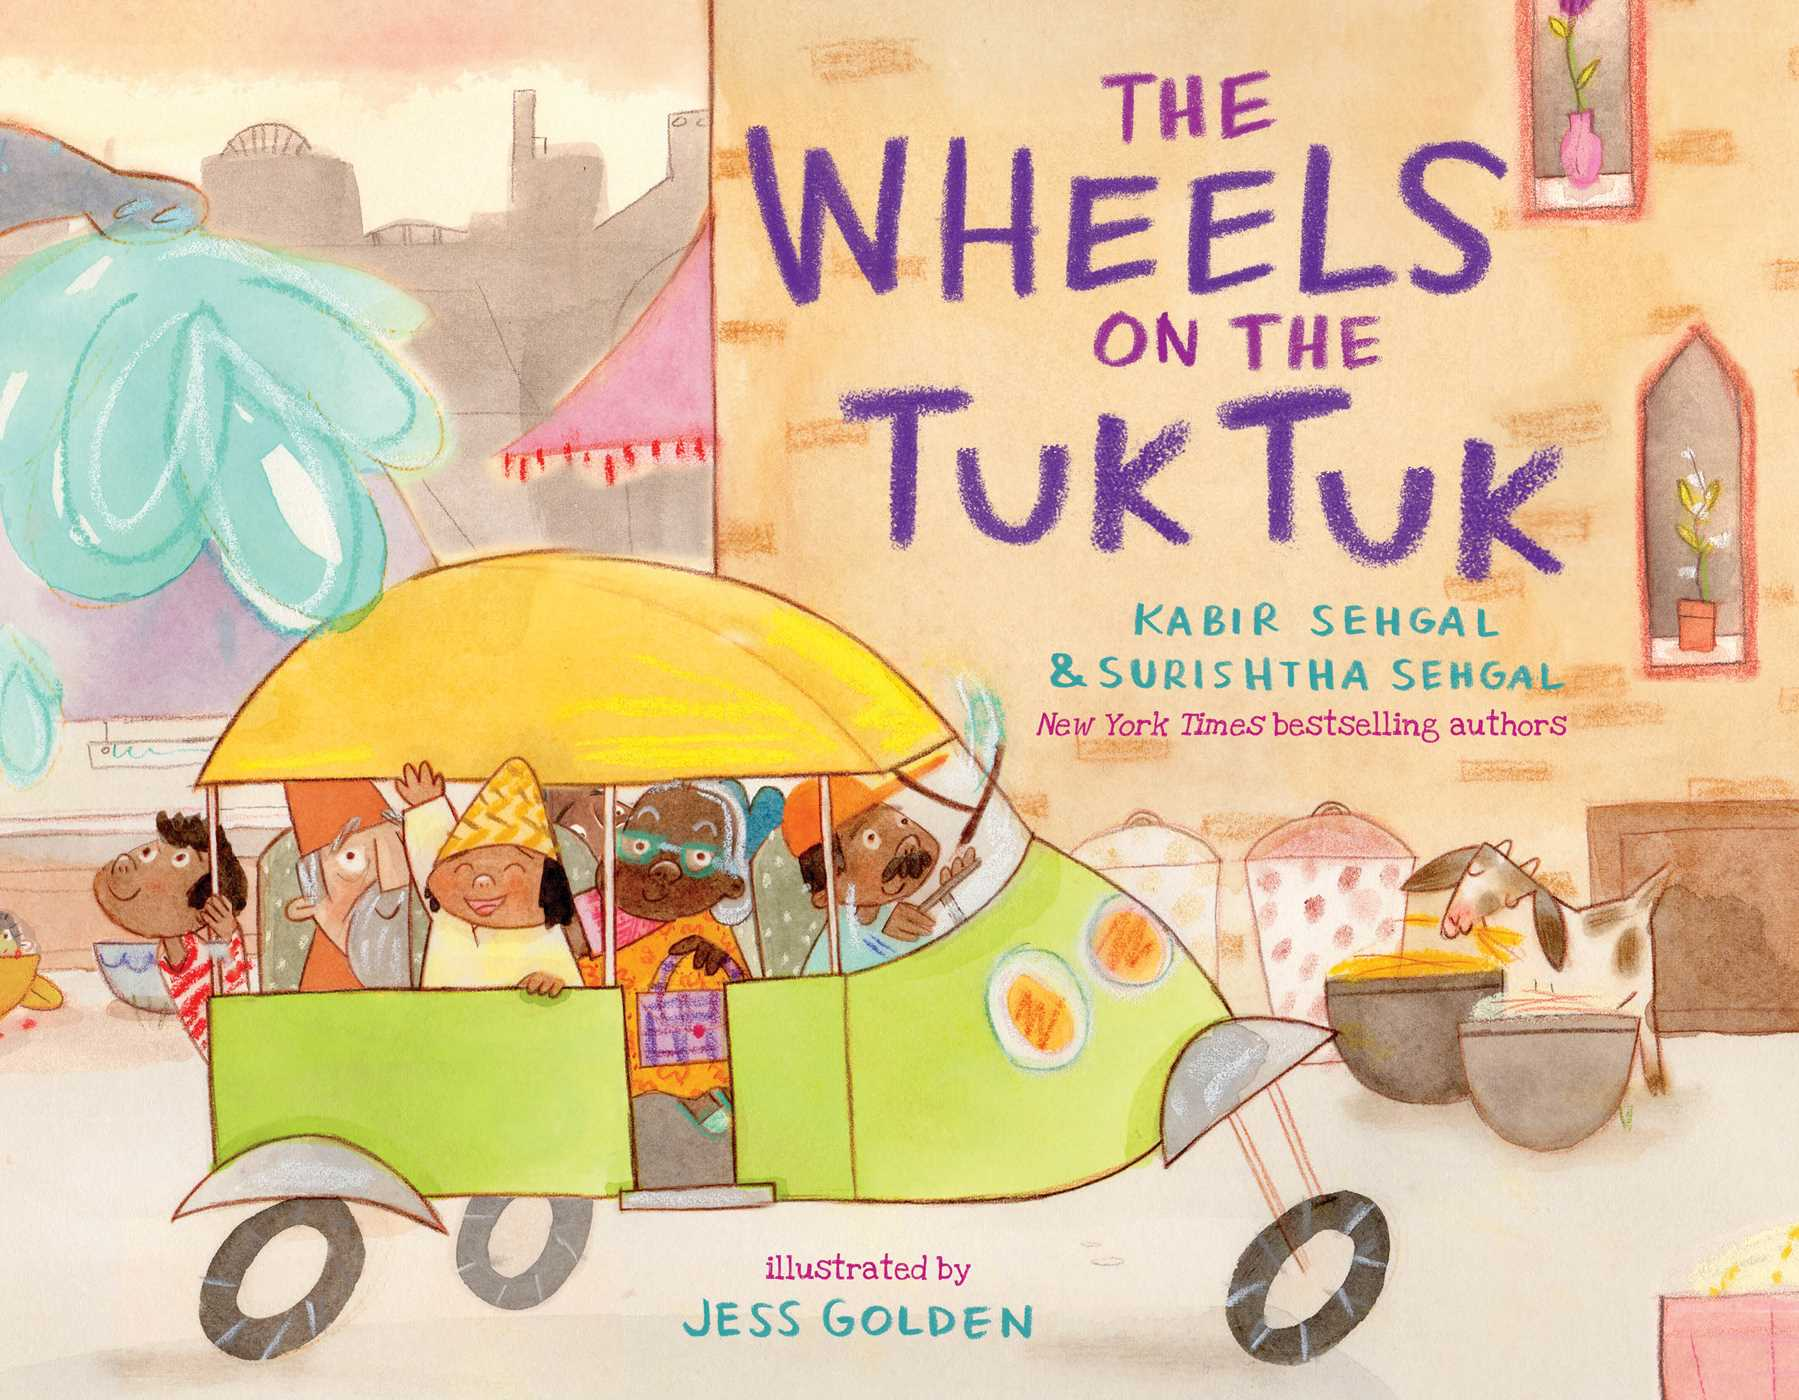 The Wheels on the Tuk Tuk by Kabir Sehgal and Surishtha Sehgal